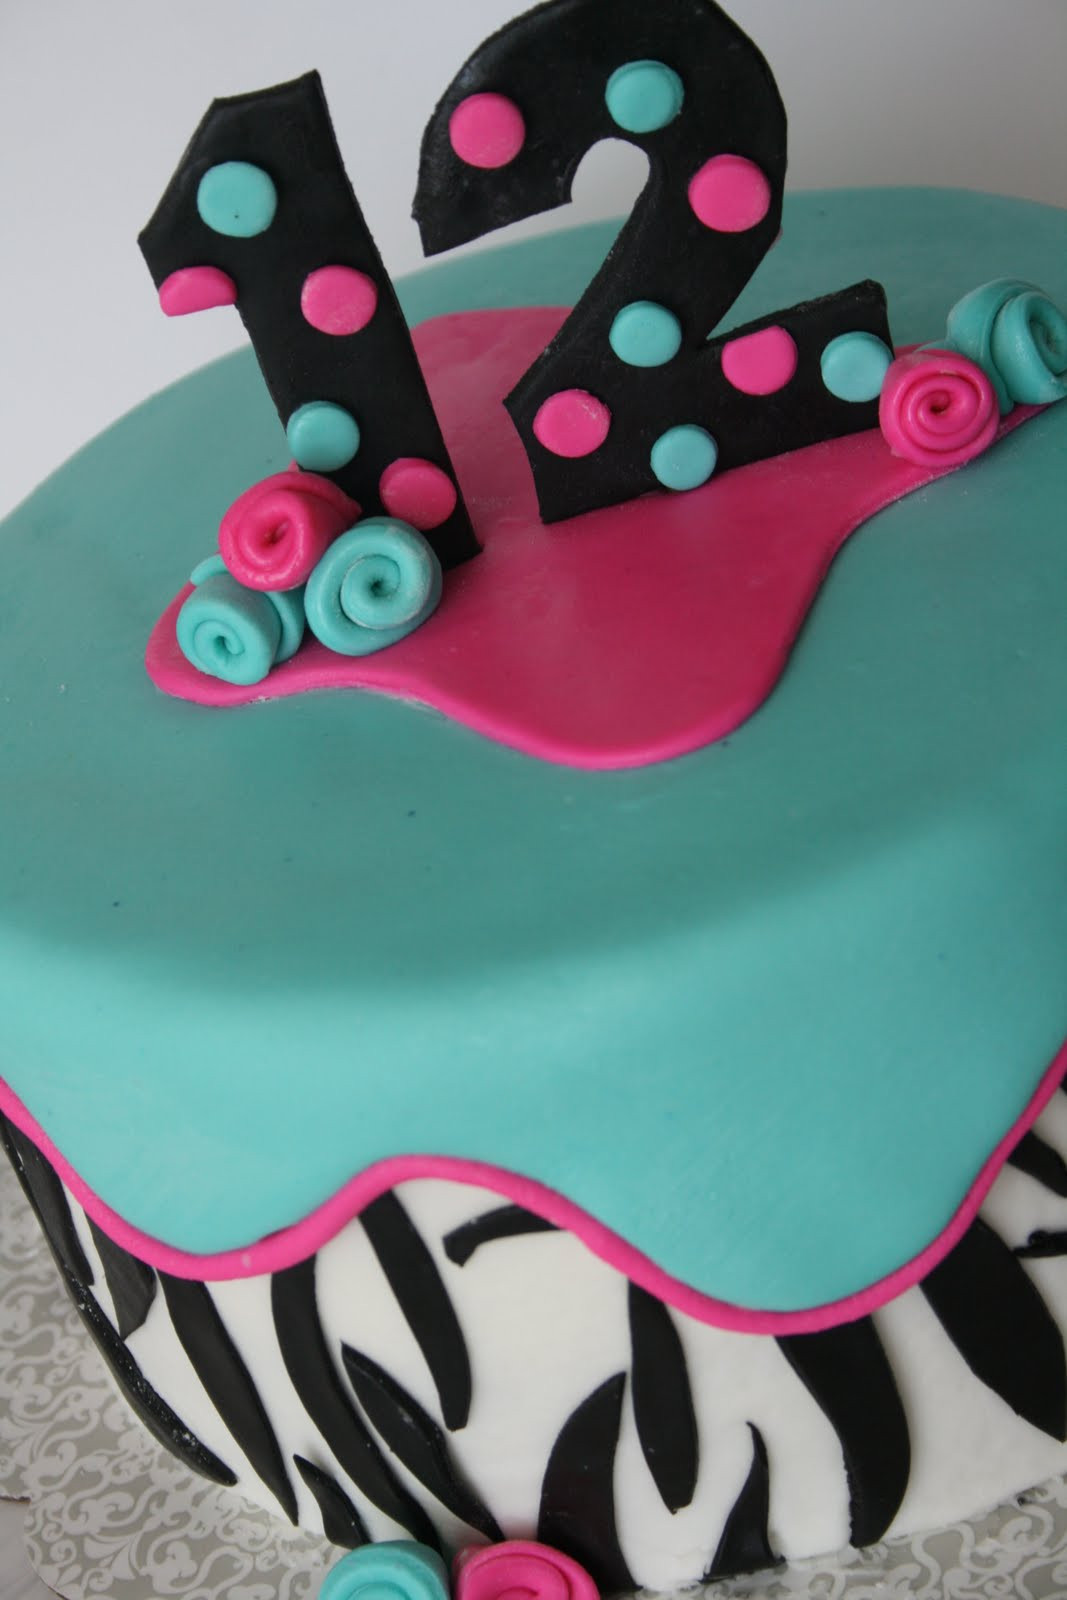 Best ideas about Birthday Cake For 12 Years Old Girl . Save or Pin And Everything Sweet Fun and funky Now.